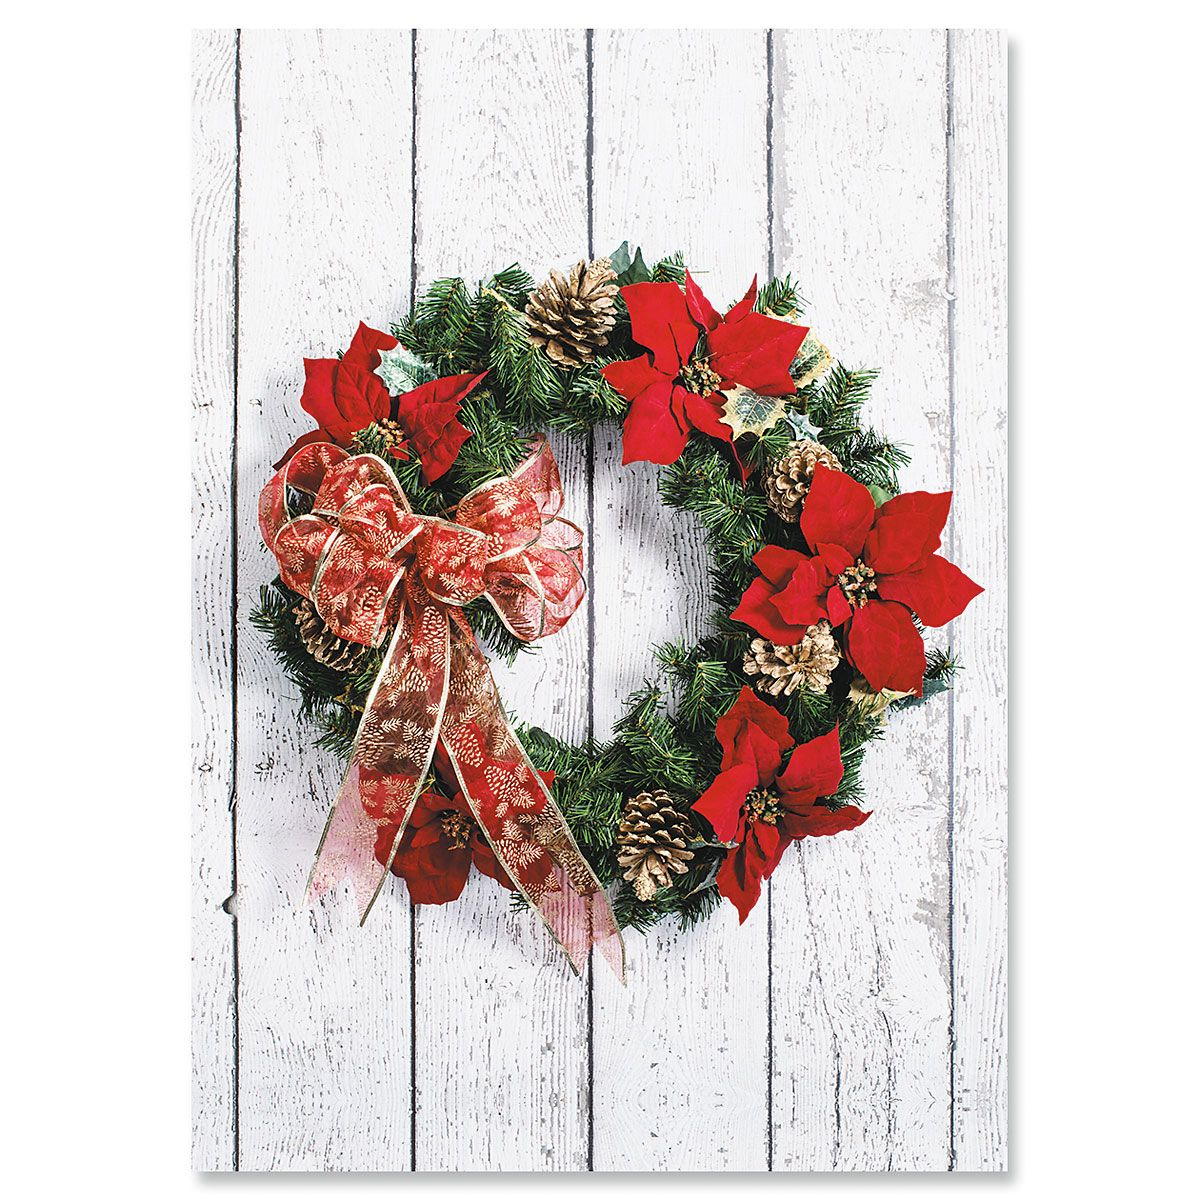 Poinsettia Wreath Christmas Cards - Personalized